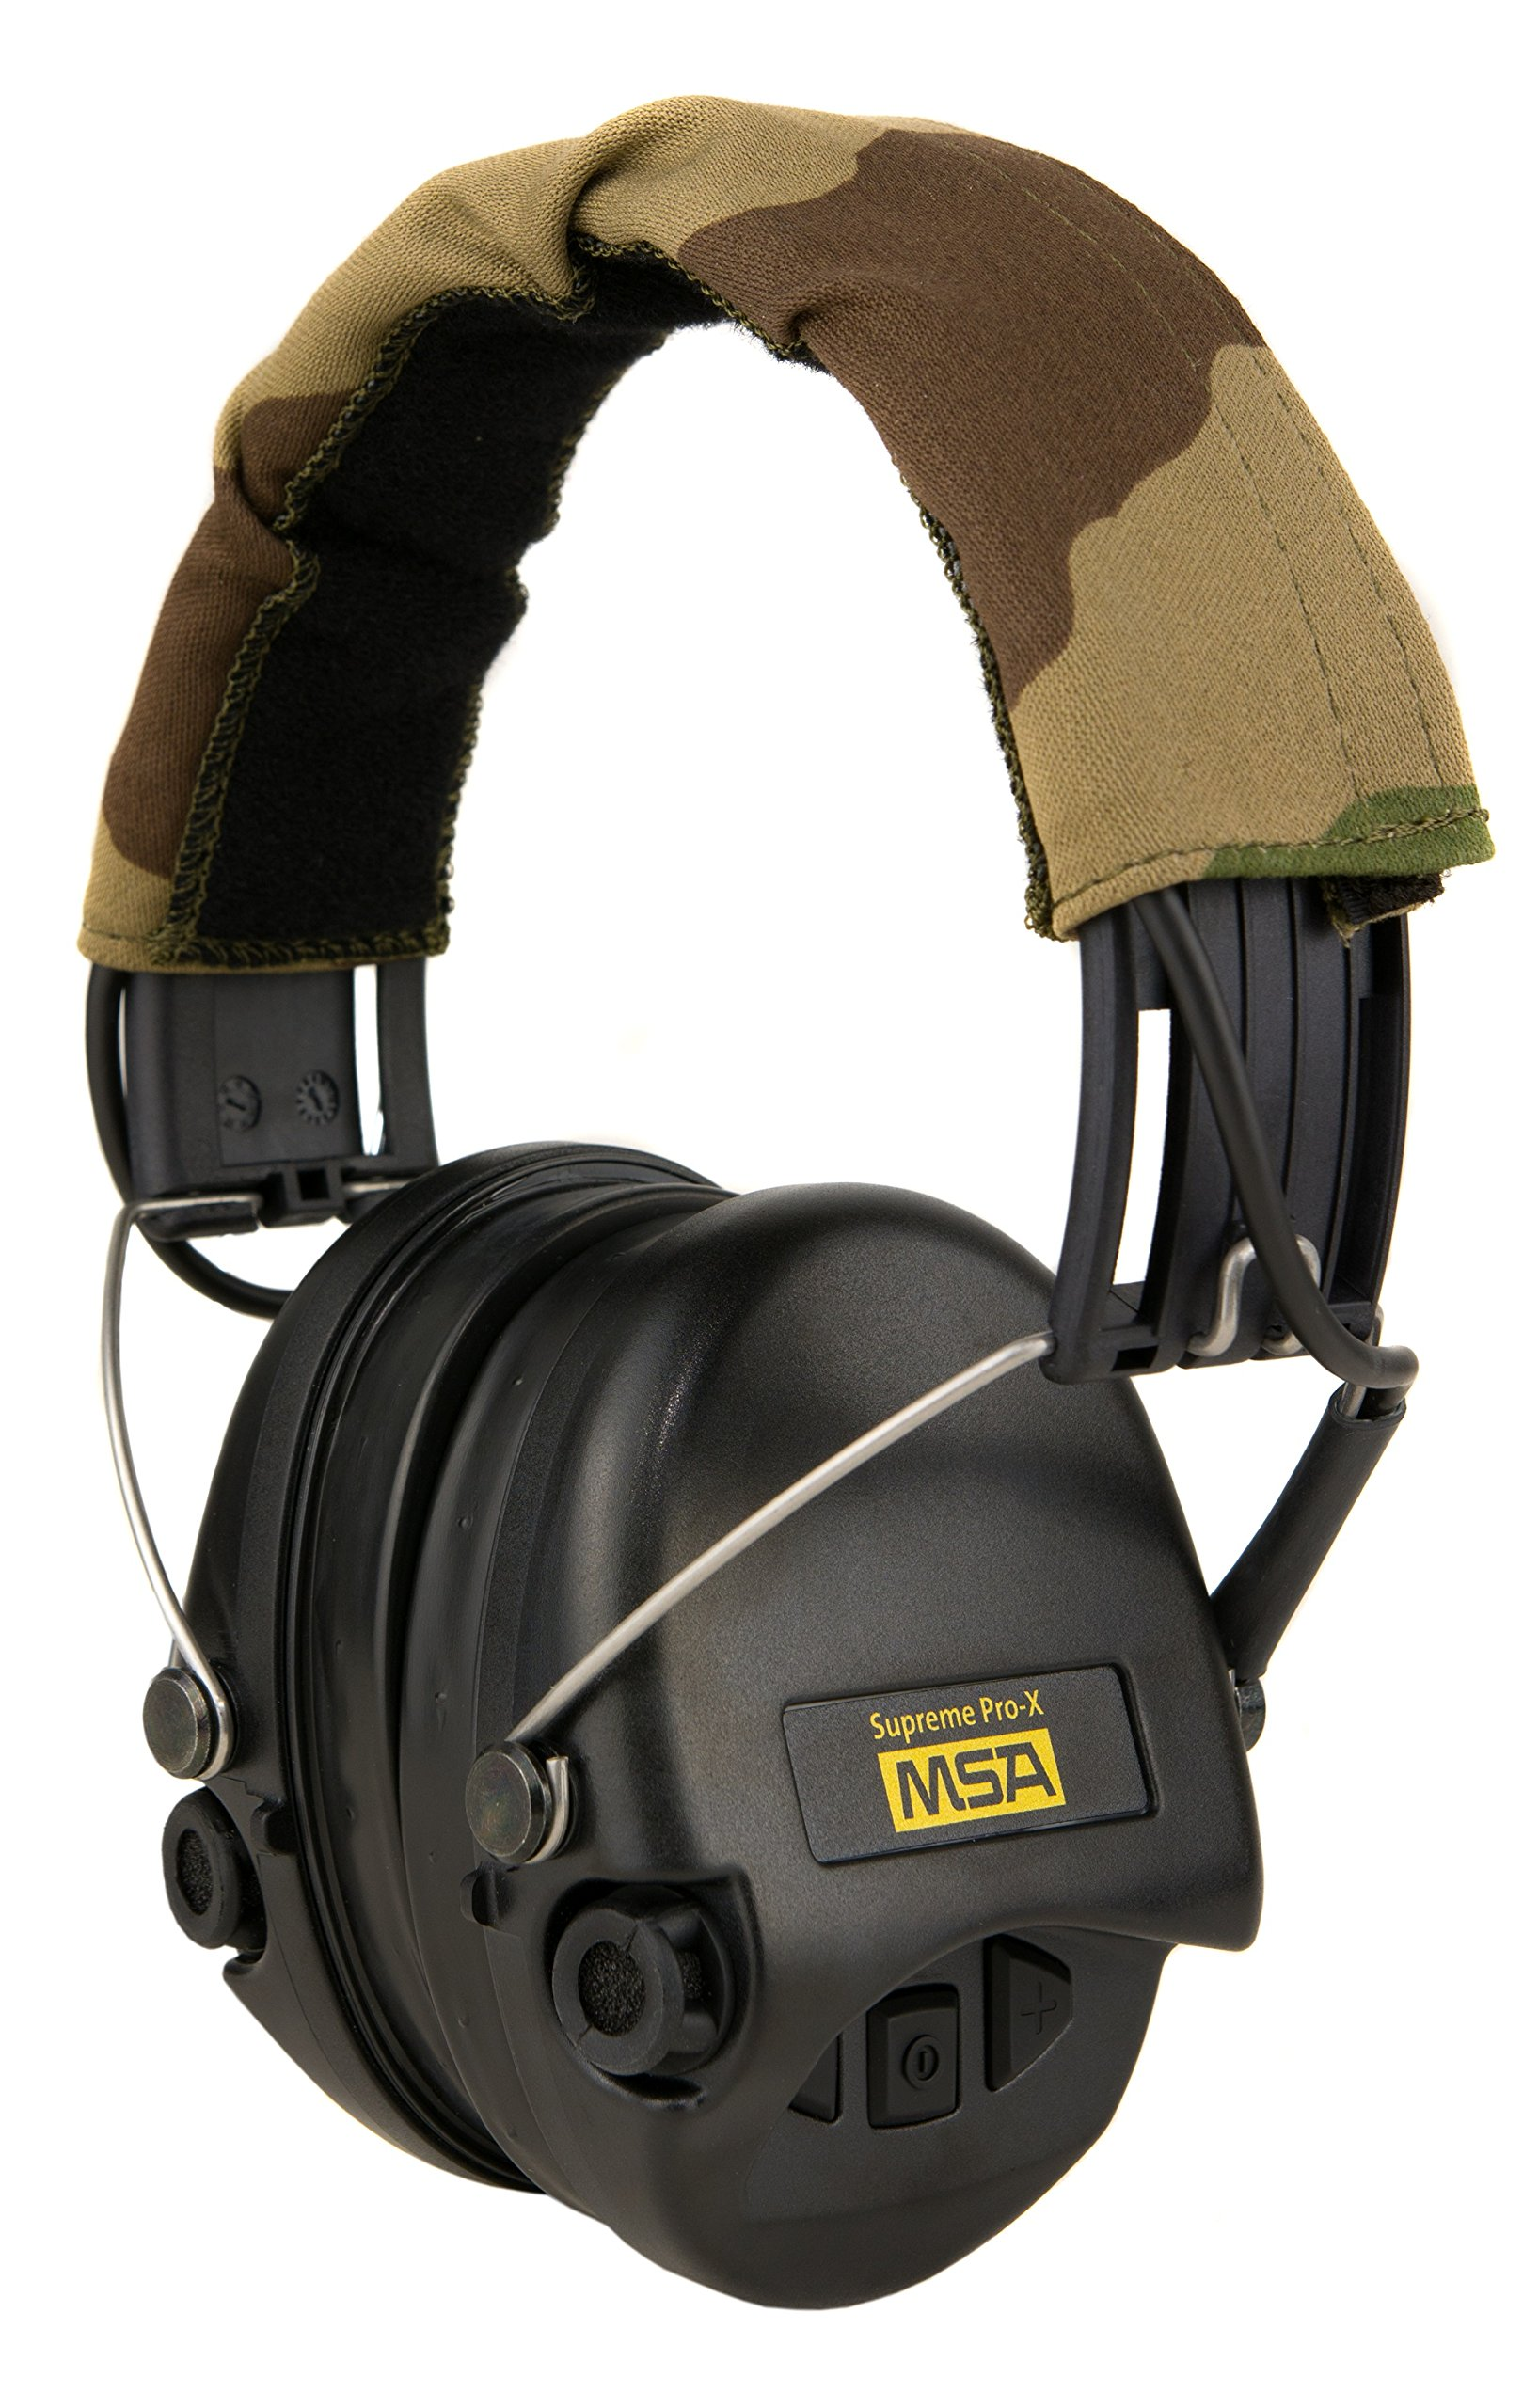 MSA Sordin Supreme PRO X - Digital Electronic Earmuff Amplification Camo-Black Gel-Seals by MSA Sordin